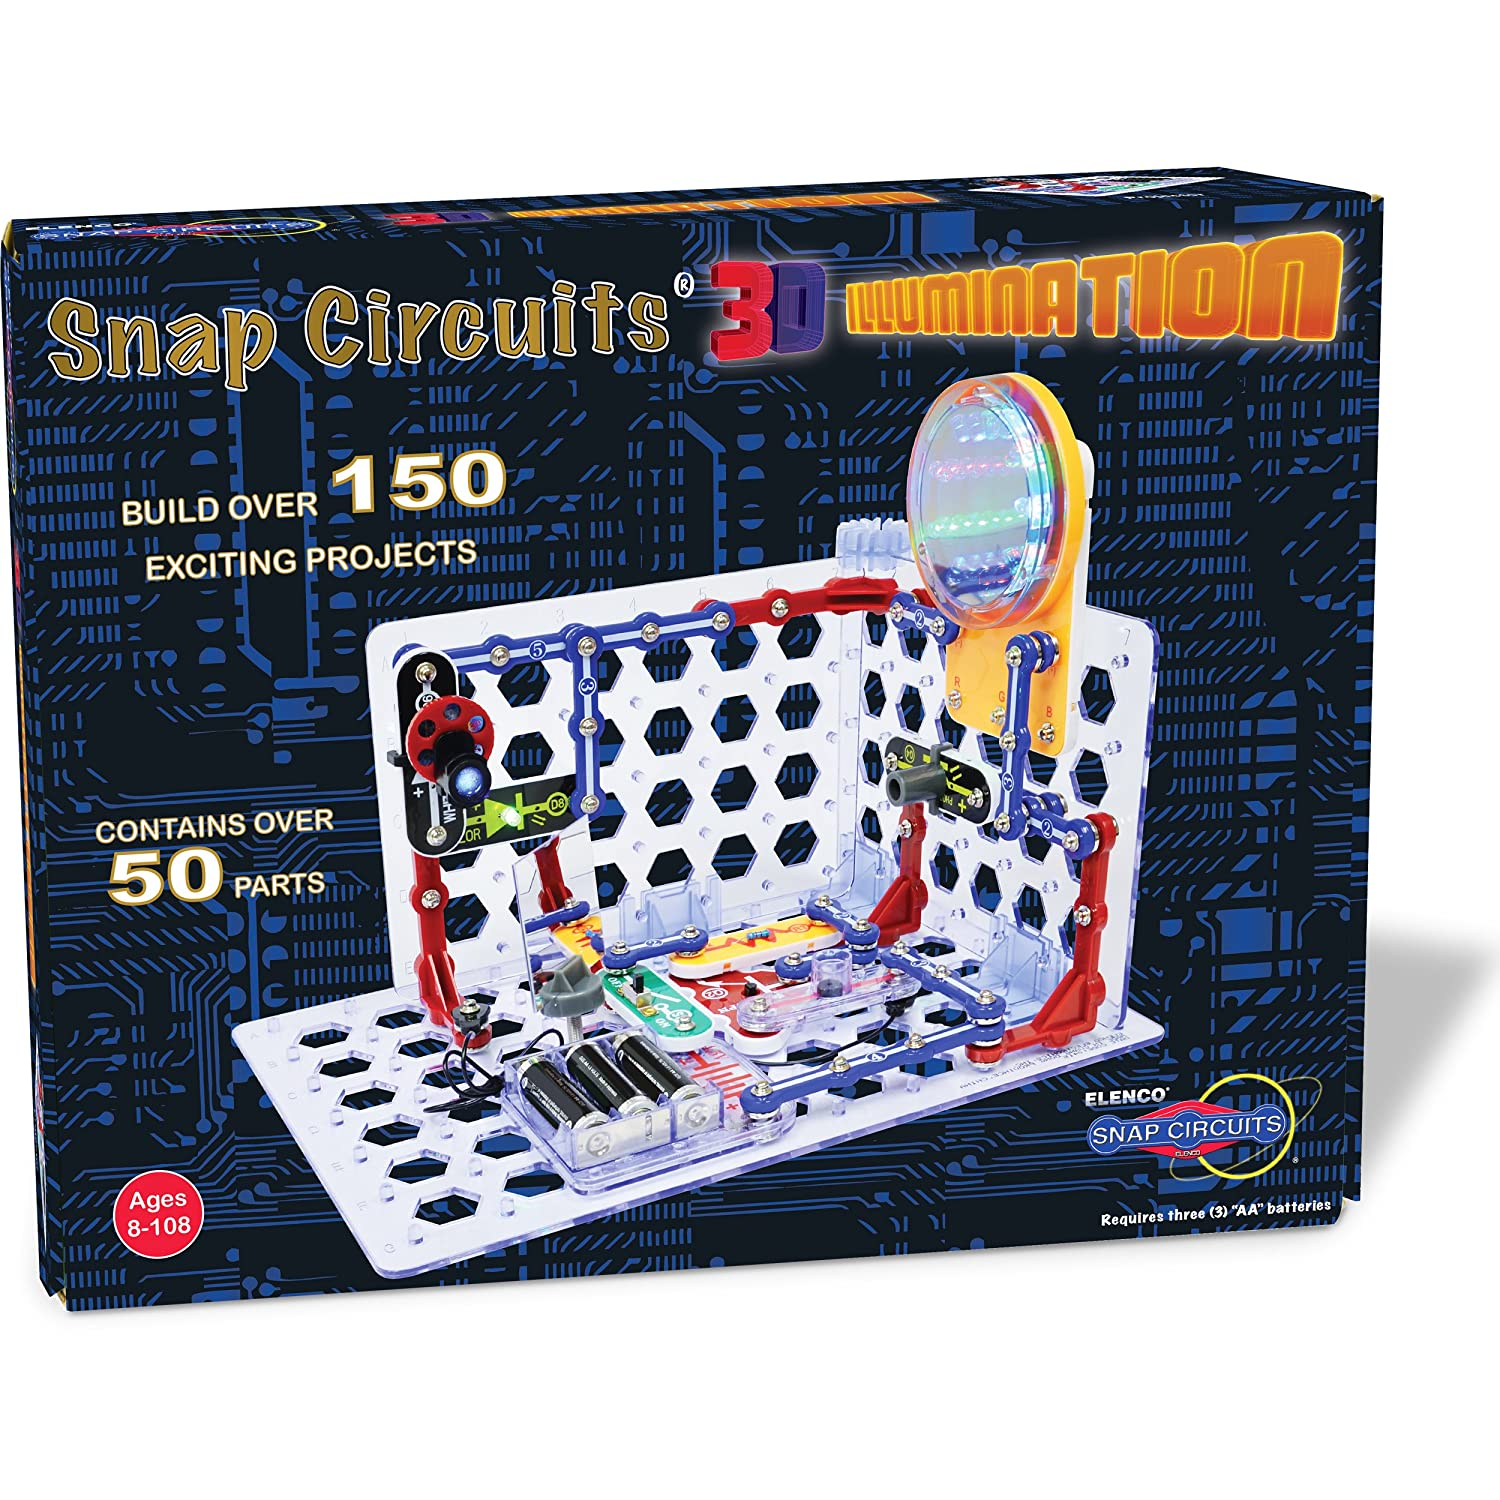 Snap Circuits 3d Illumination Electronics Exploration Learning About Circuit Kit Over 150 Stem Projects 4 Color Project Manual 50 Modules Unlimited Fun